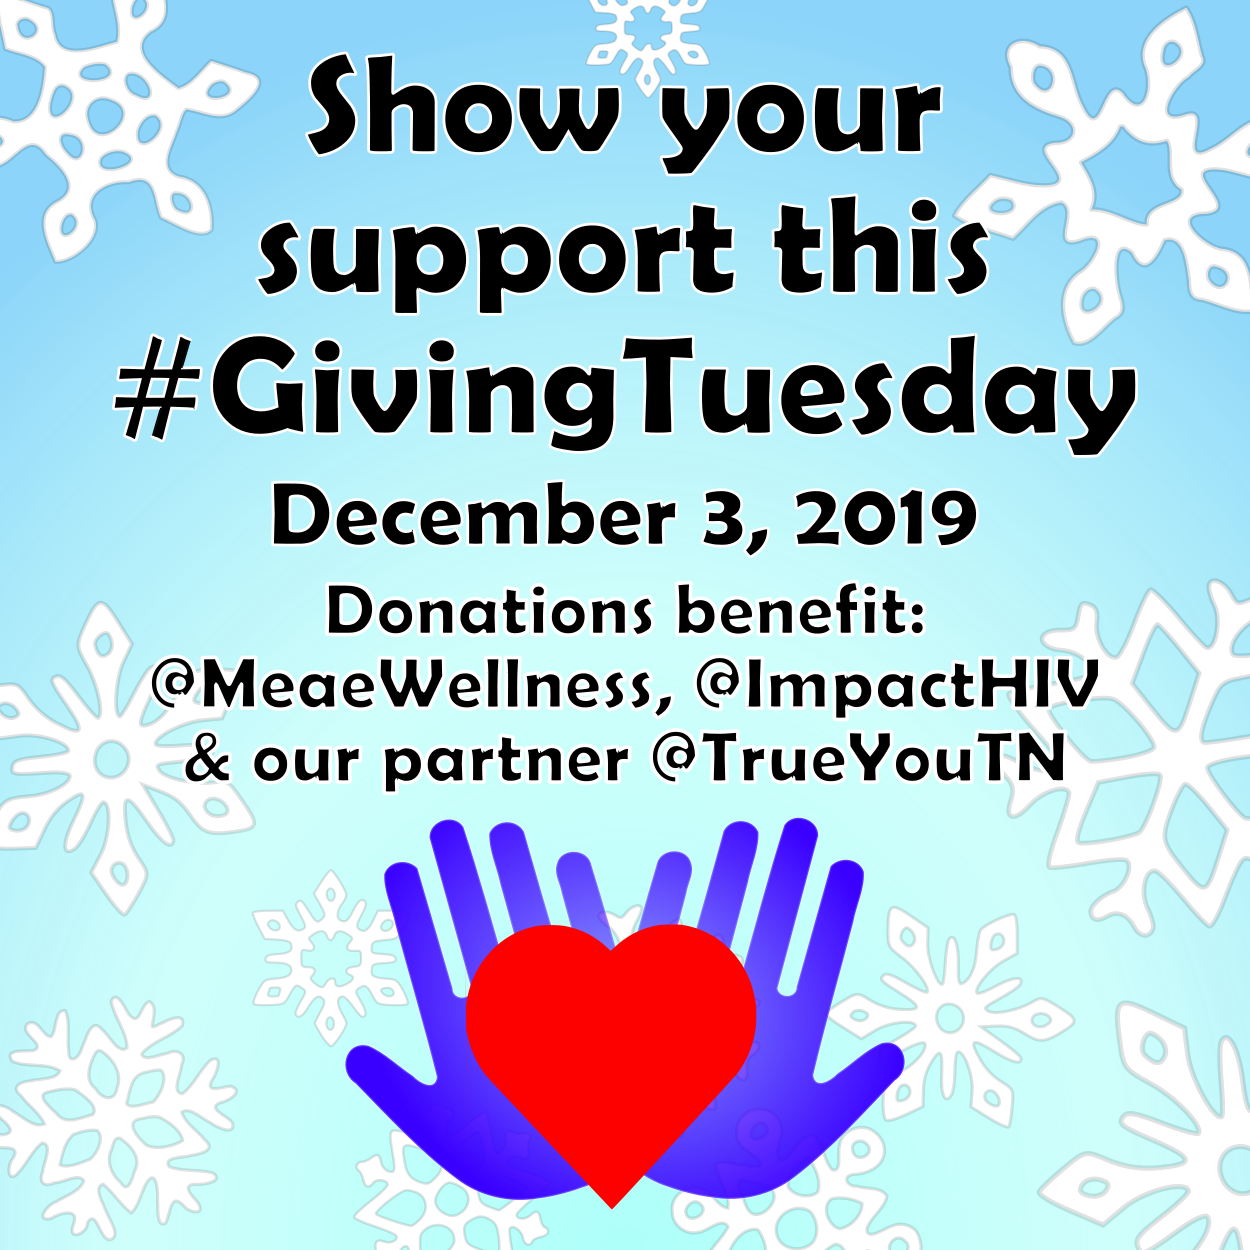 Show your support this #GivingTuesday. Donations support @MeaeWellness, @ImpactHIV, and our partner @TrueYouTN